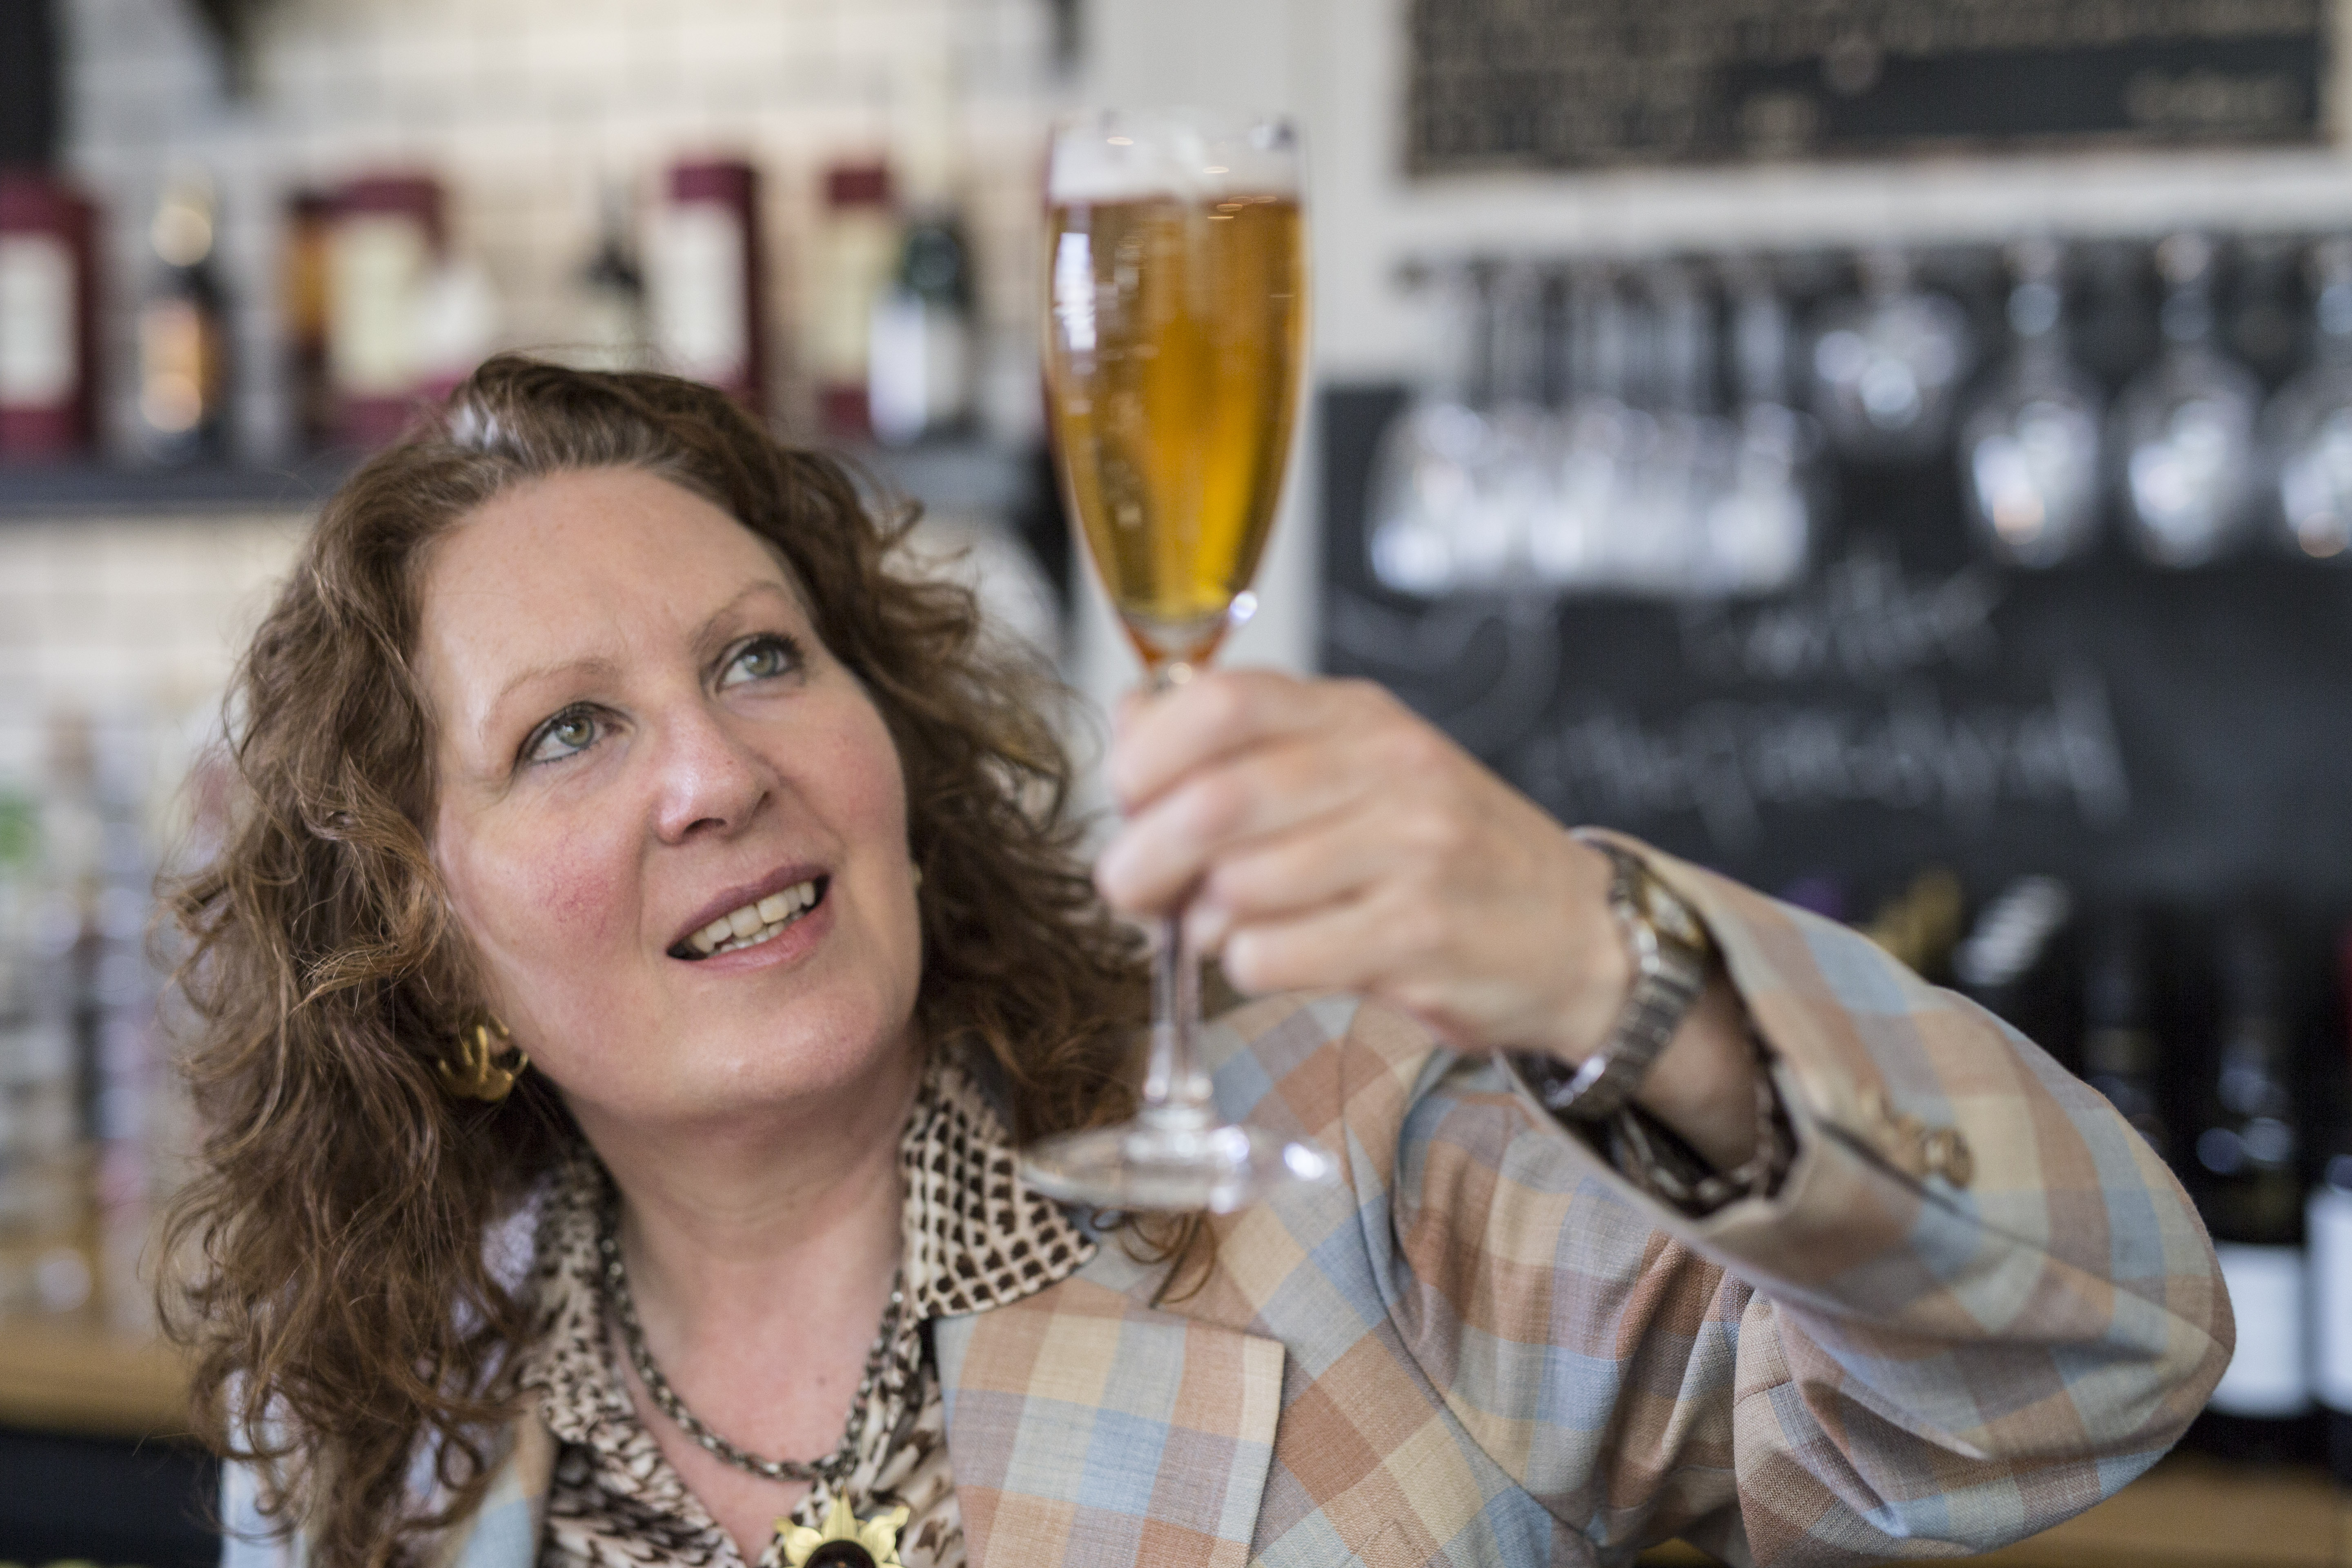 Women avoid pint glasses, London - 08 June 2015